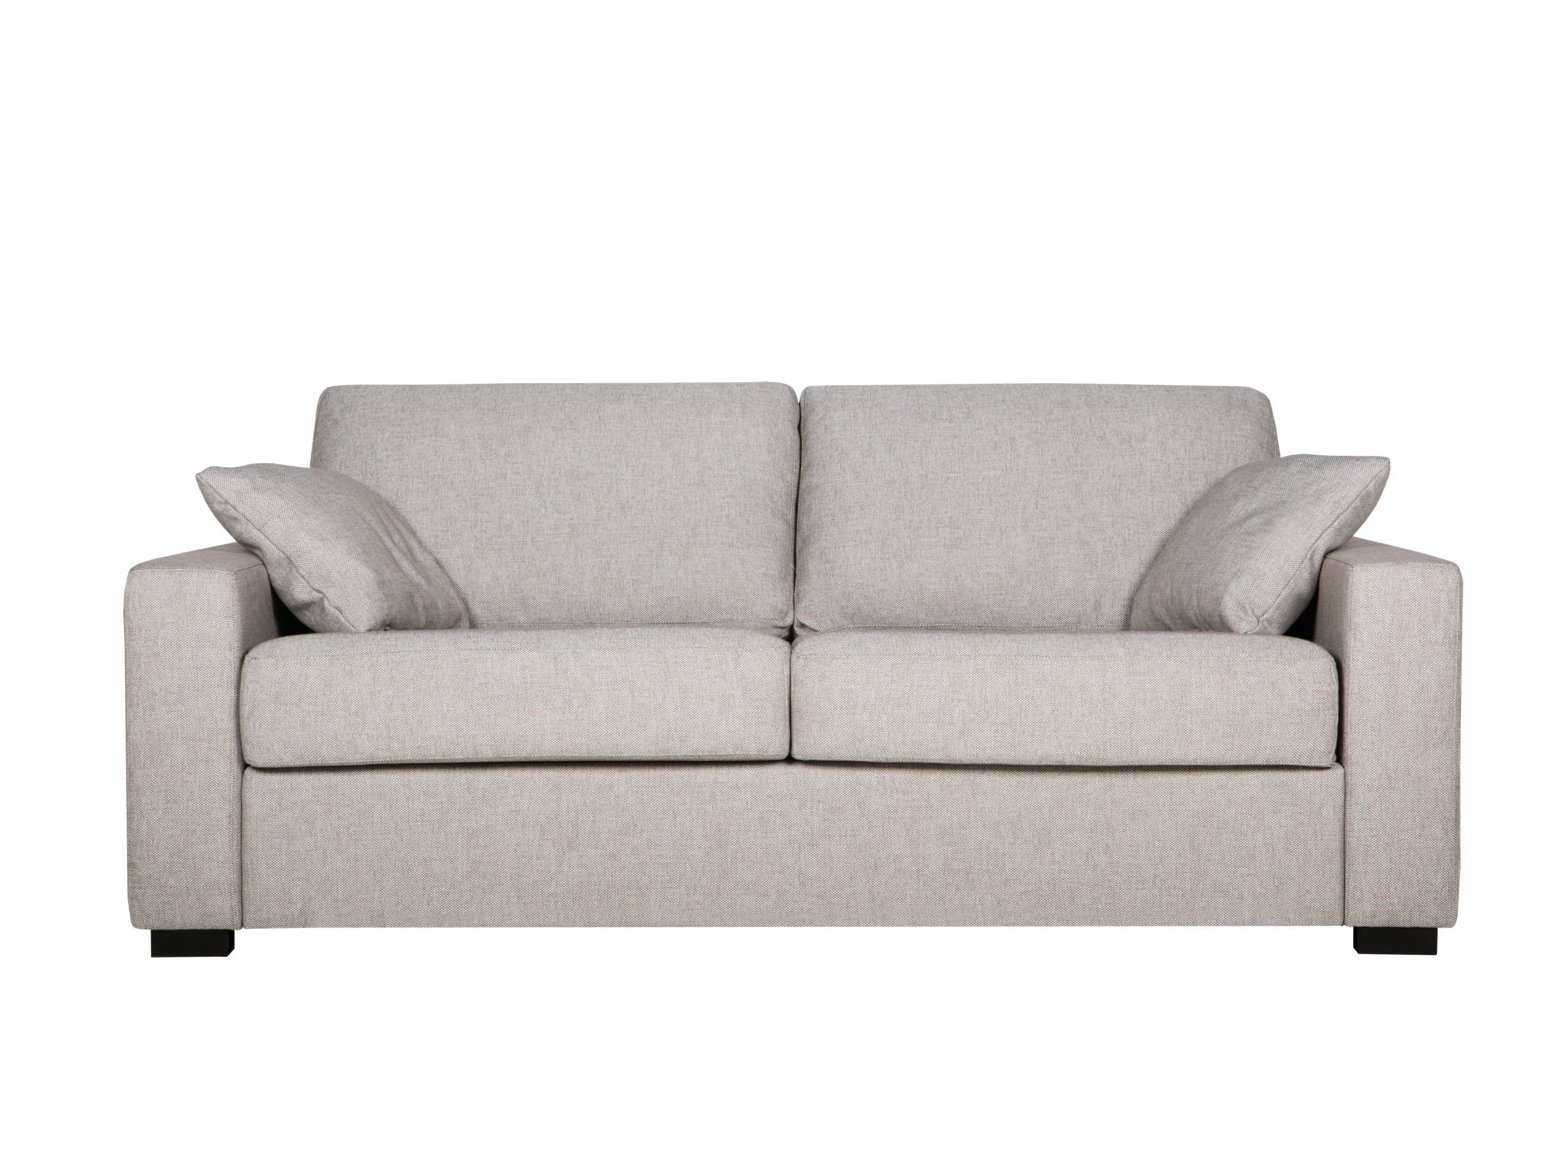 2 seater fabric sofa funk 2 seater fabric sofa bed next for Sofa bed next